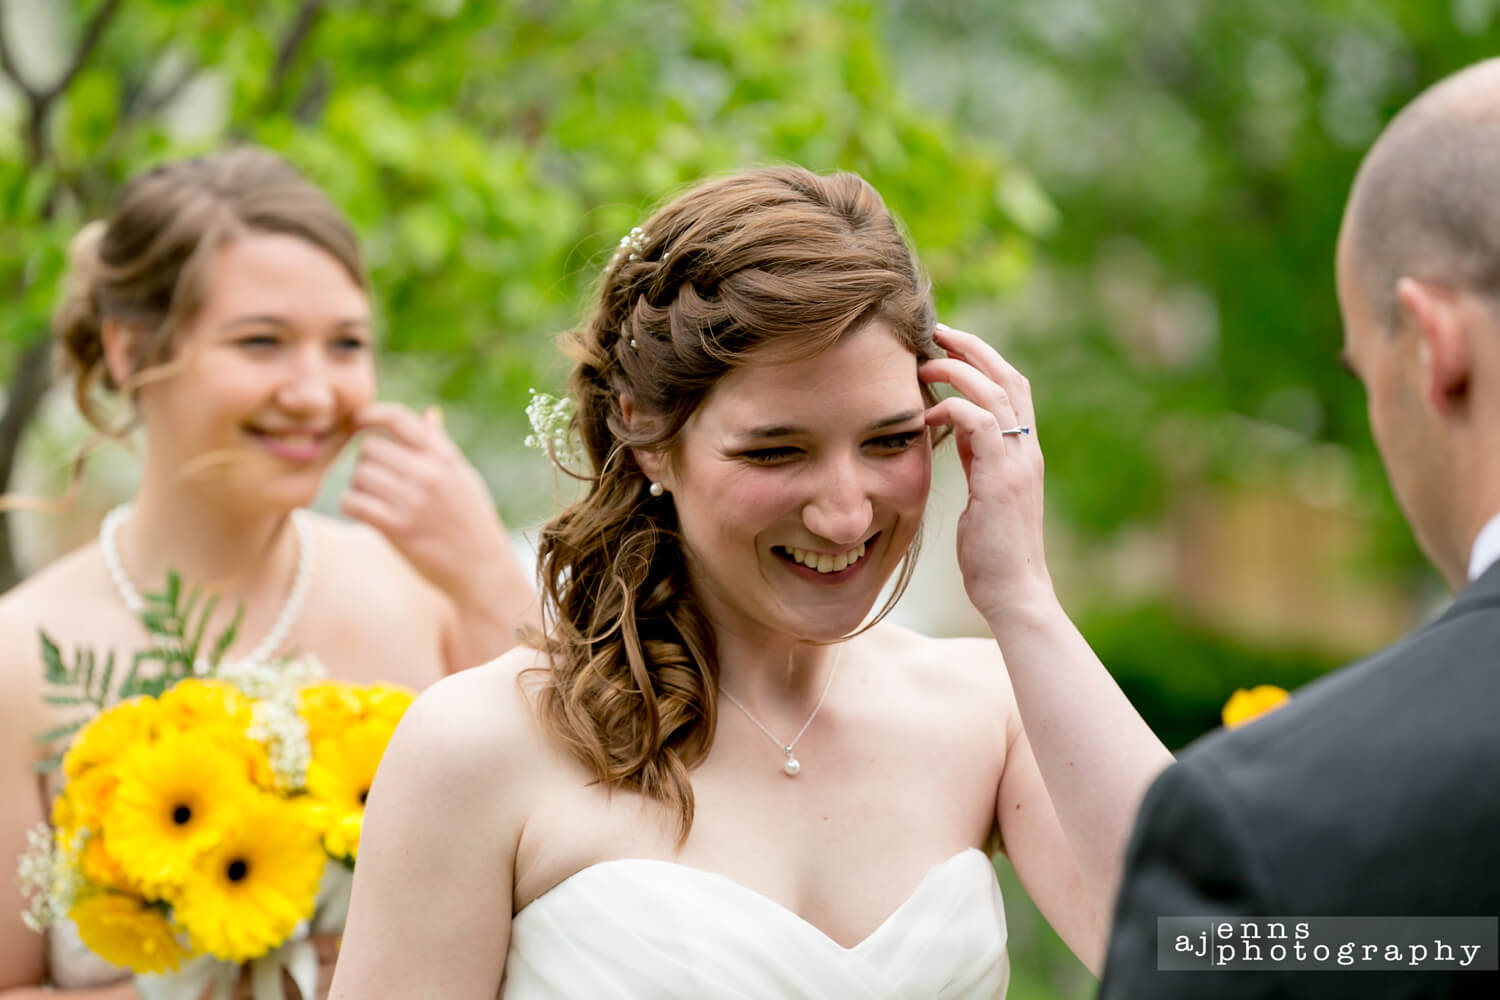 The bride laughing pretty hard during a ceremony joke